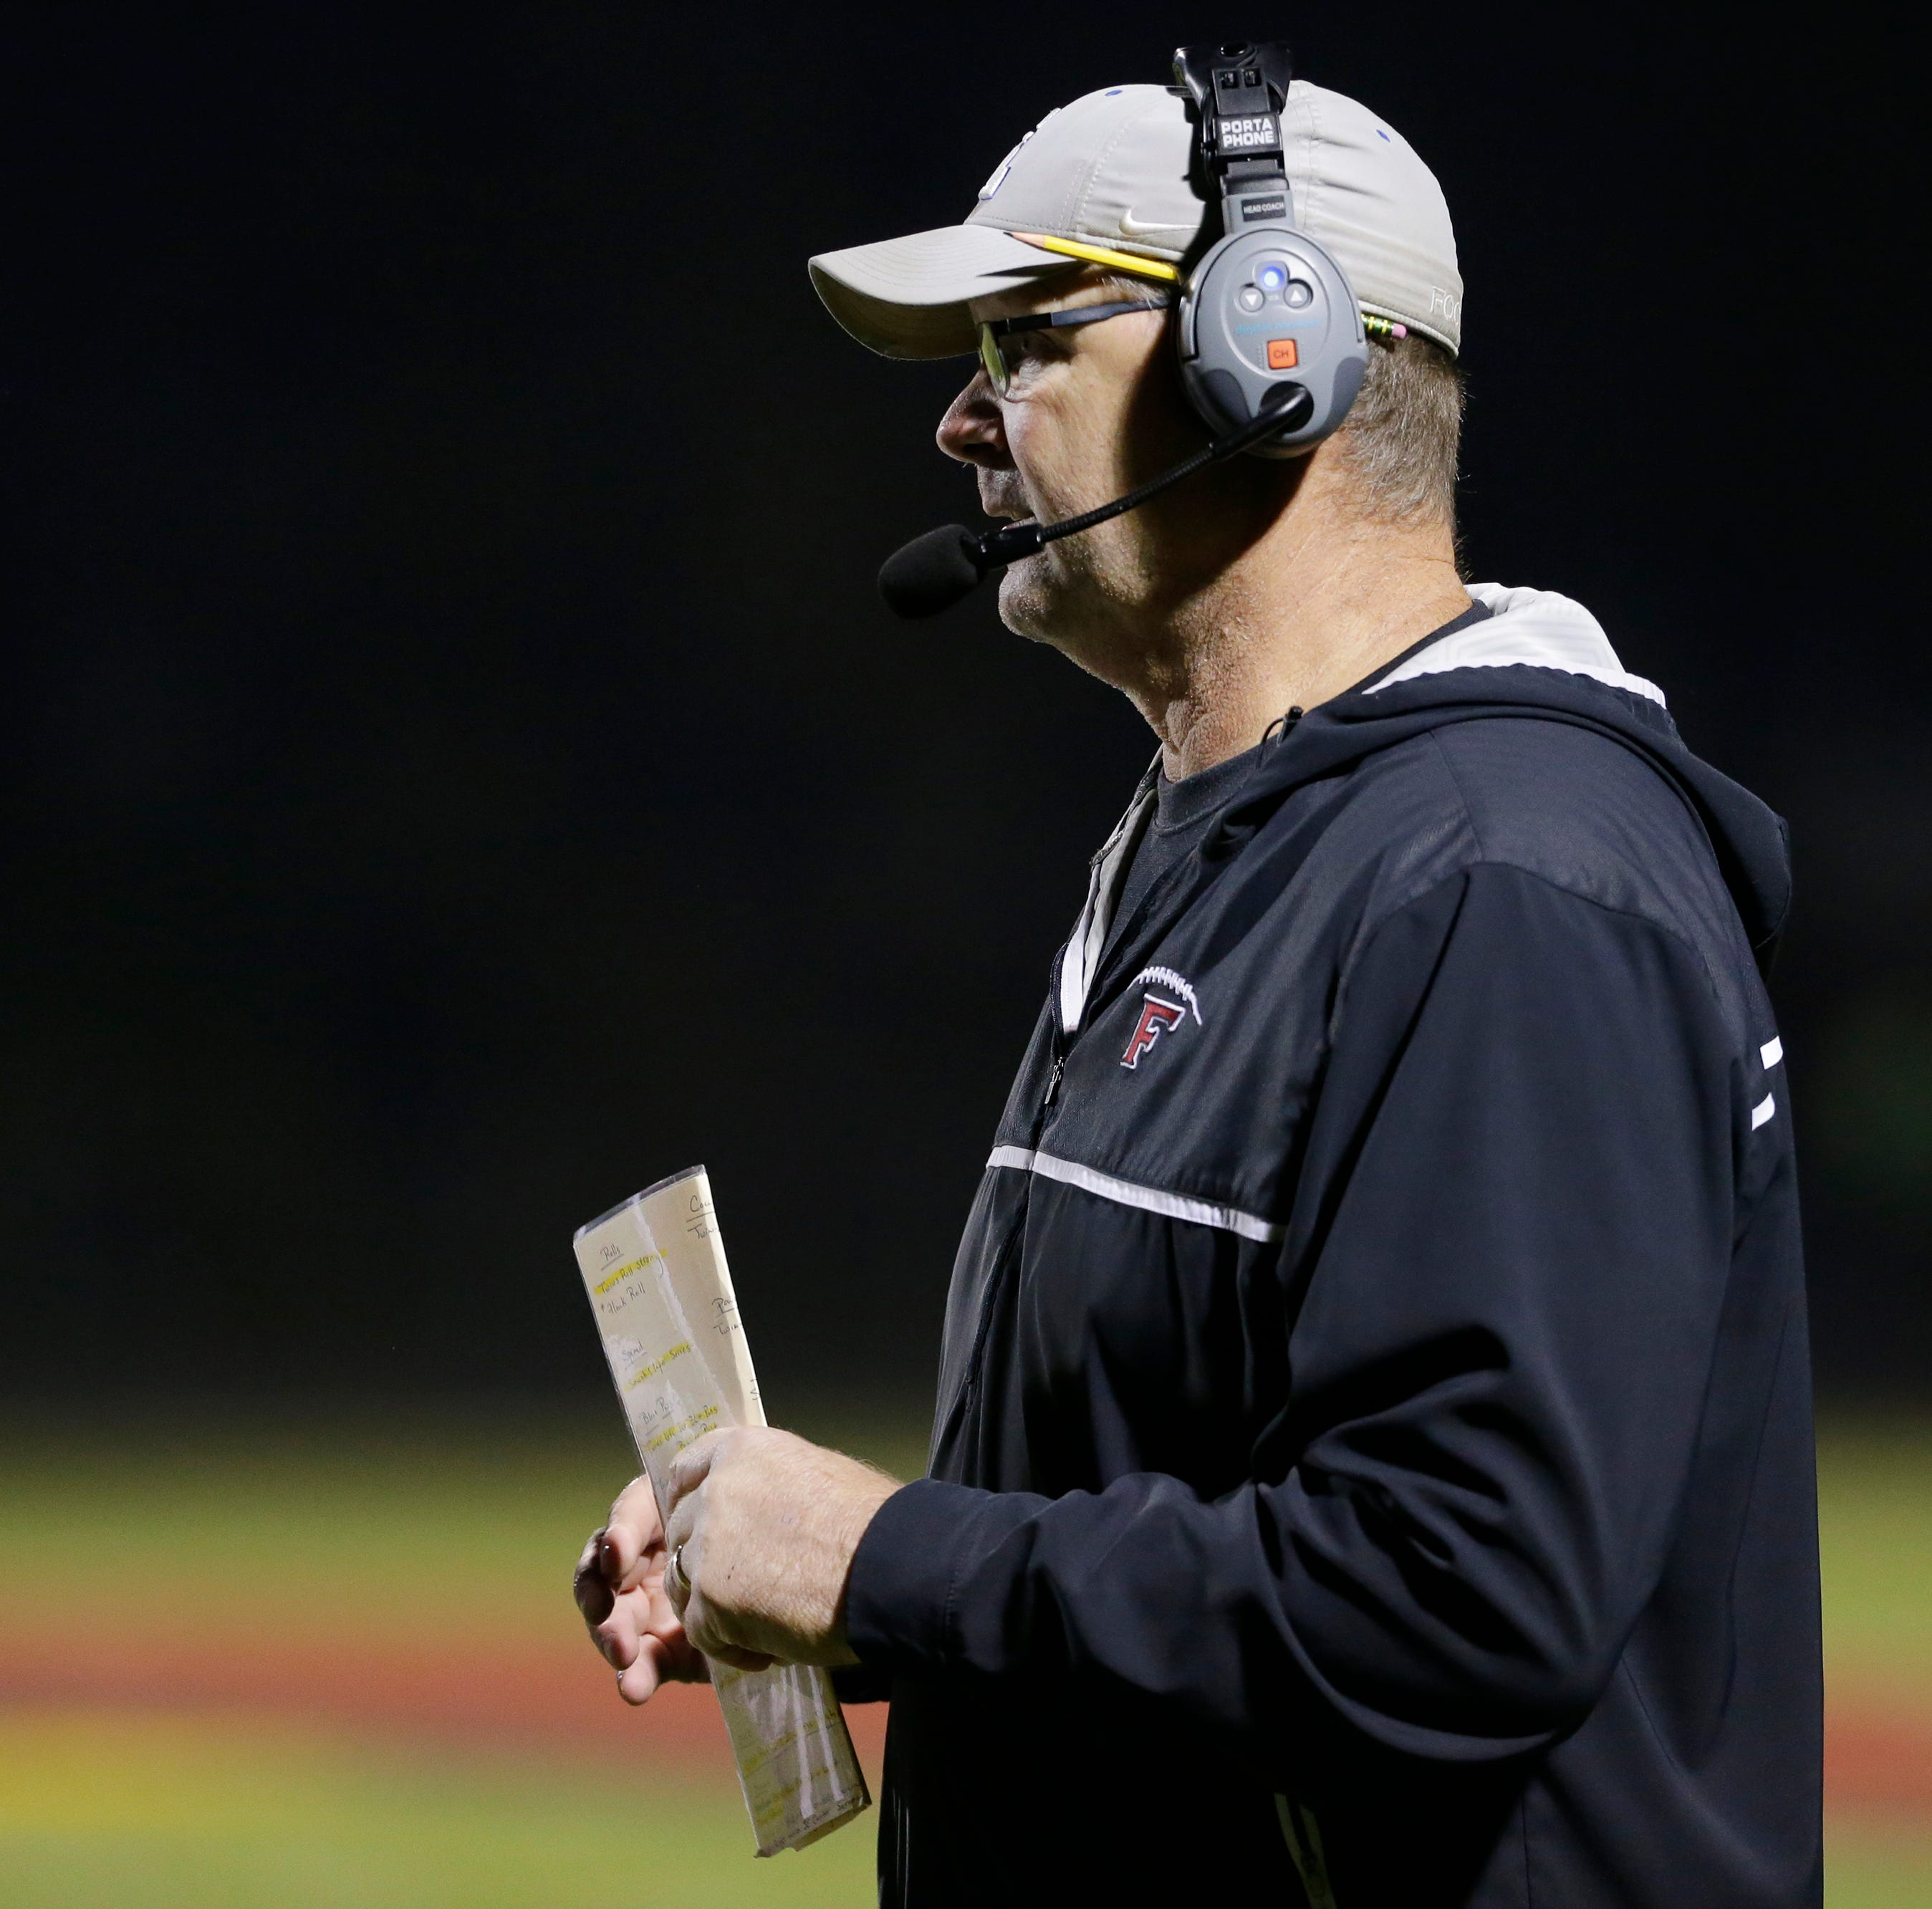 Fond du Lac football coach Steve Jorgensen steps down